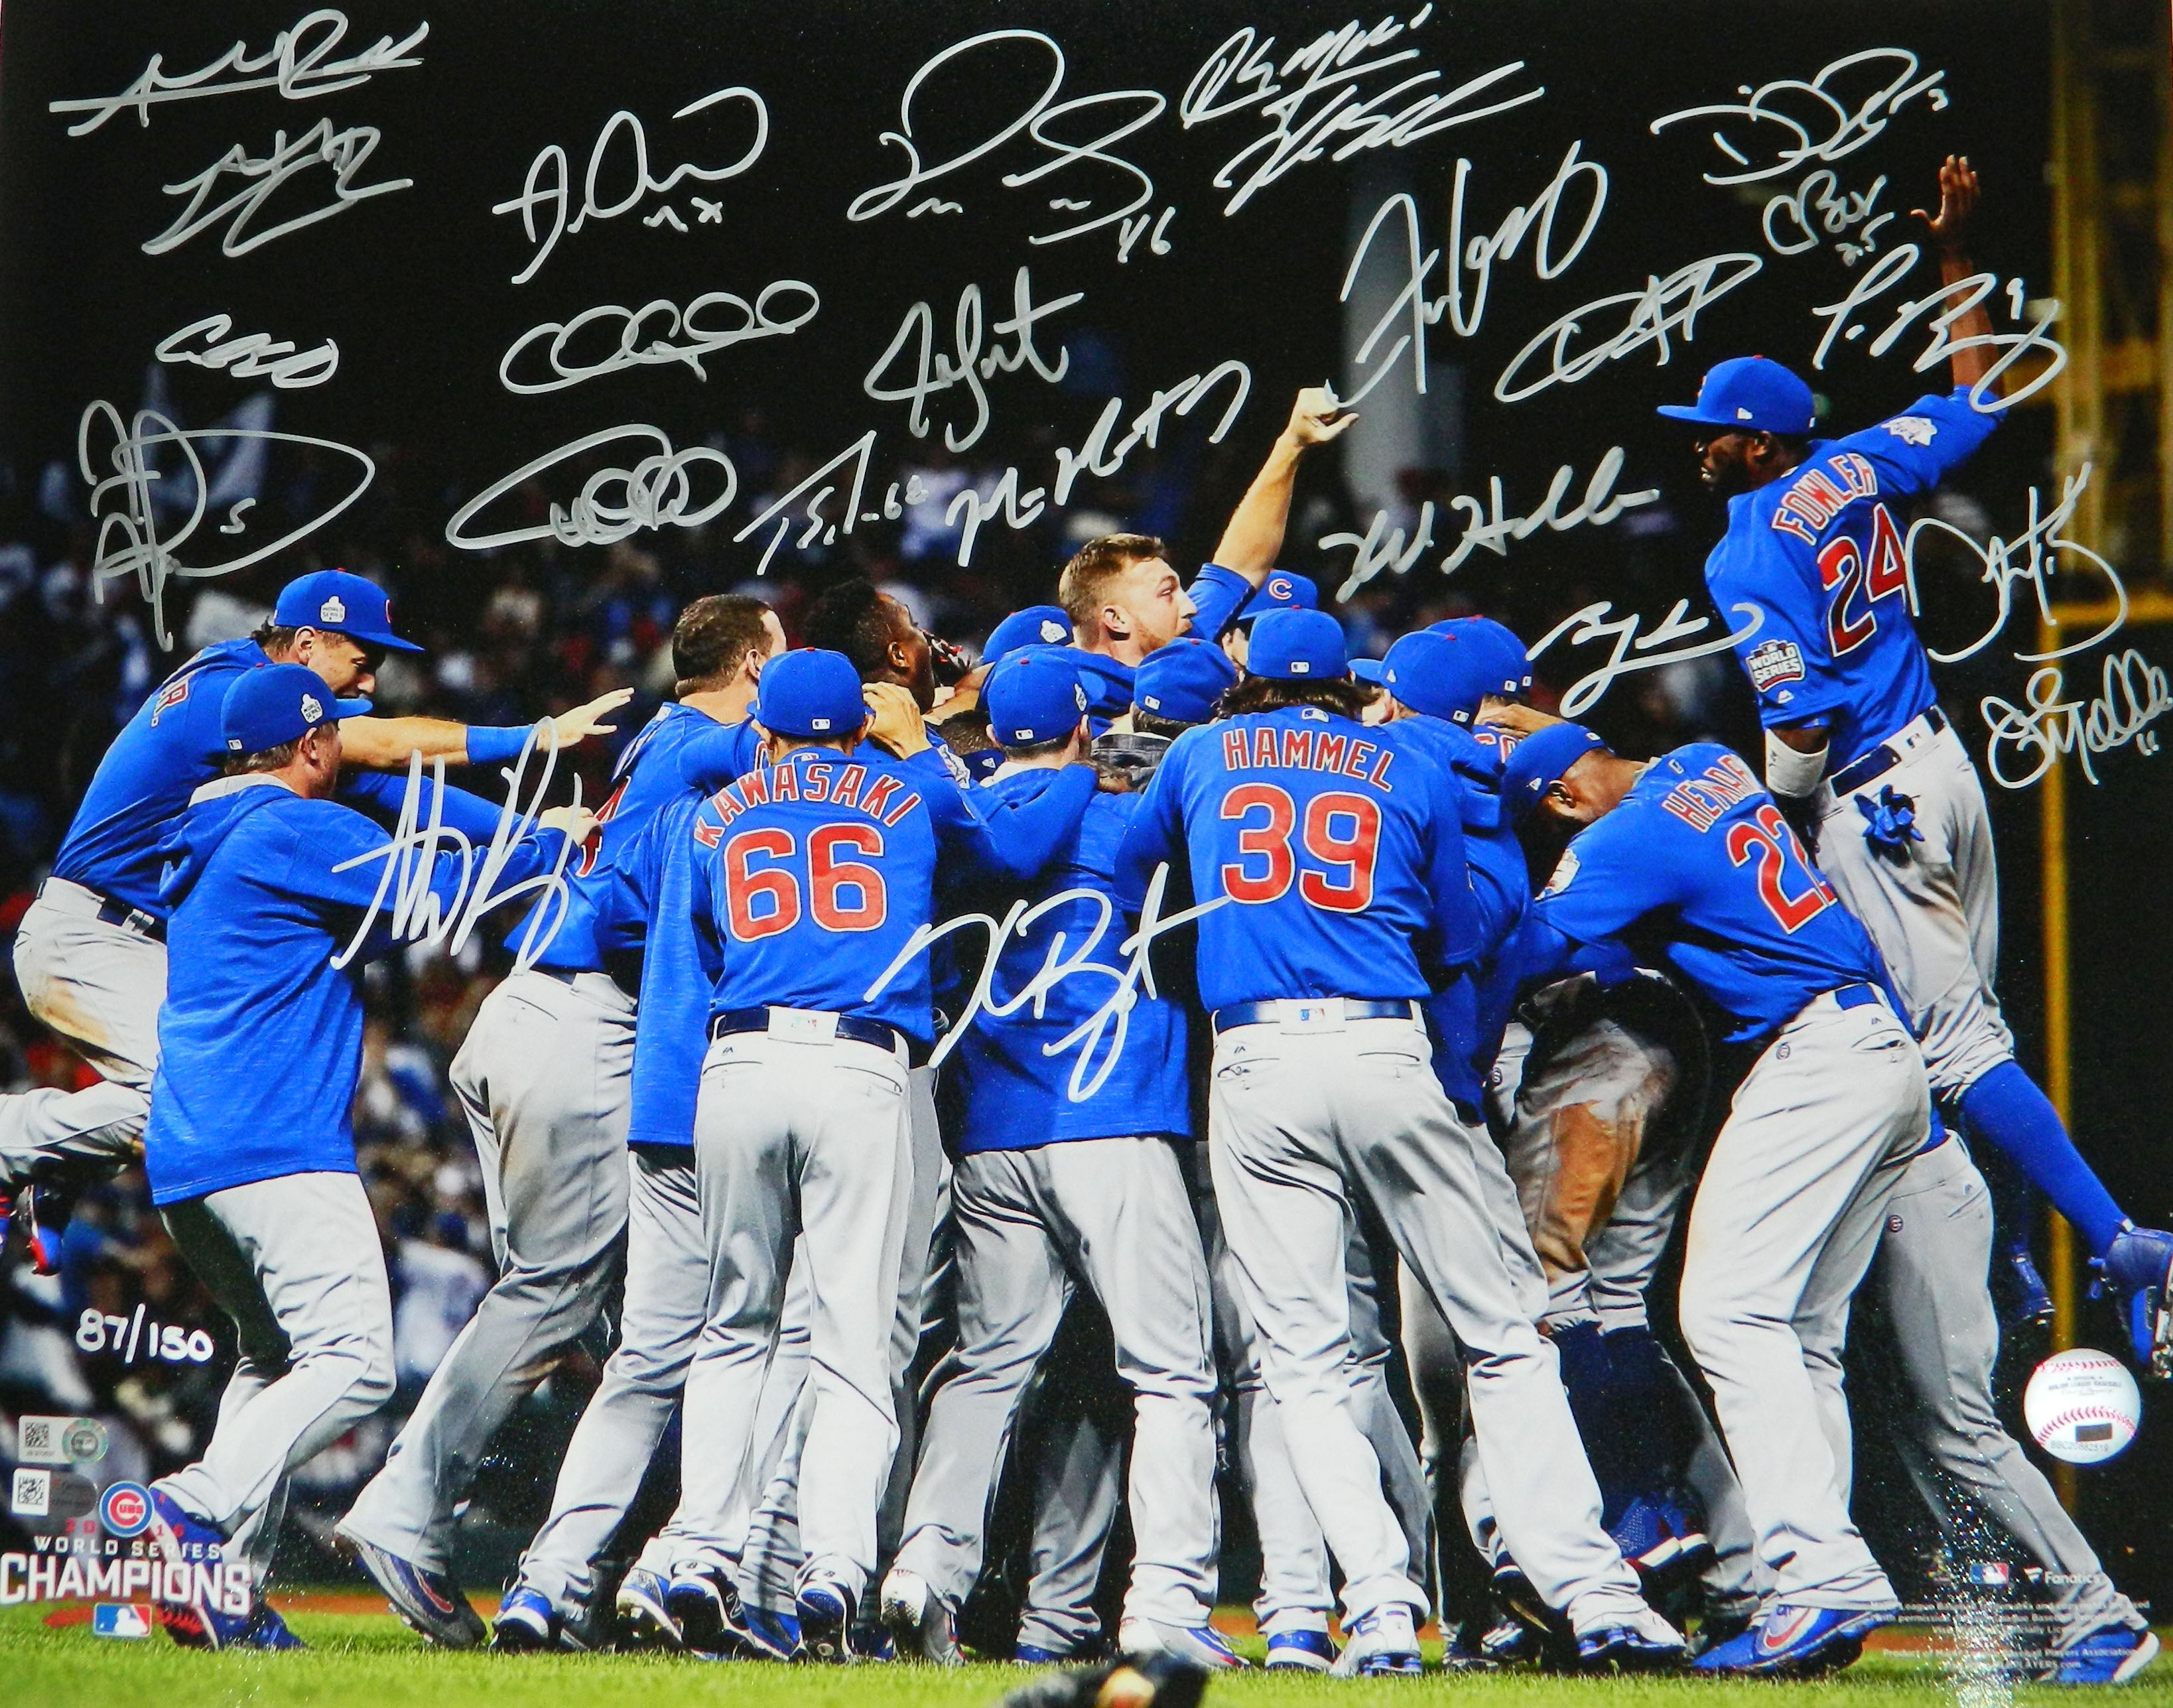 03309548b5d 2016 Chicago Cubs Team Signed Chicago Cubs 2016 World Series Pile Up  Celebration 16x20 Photo (